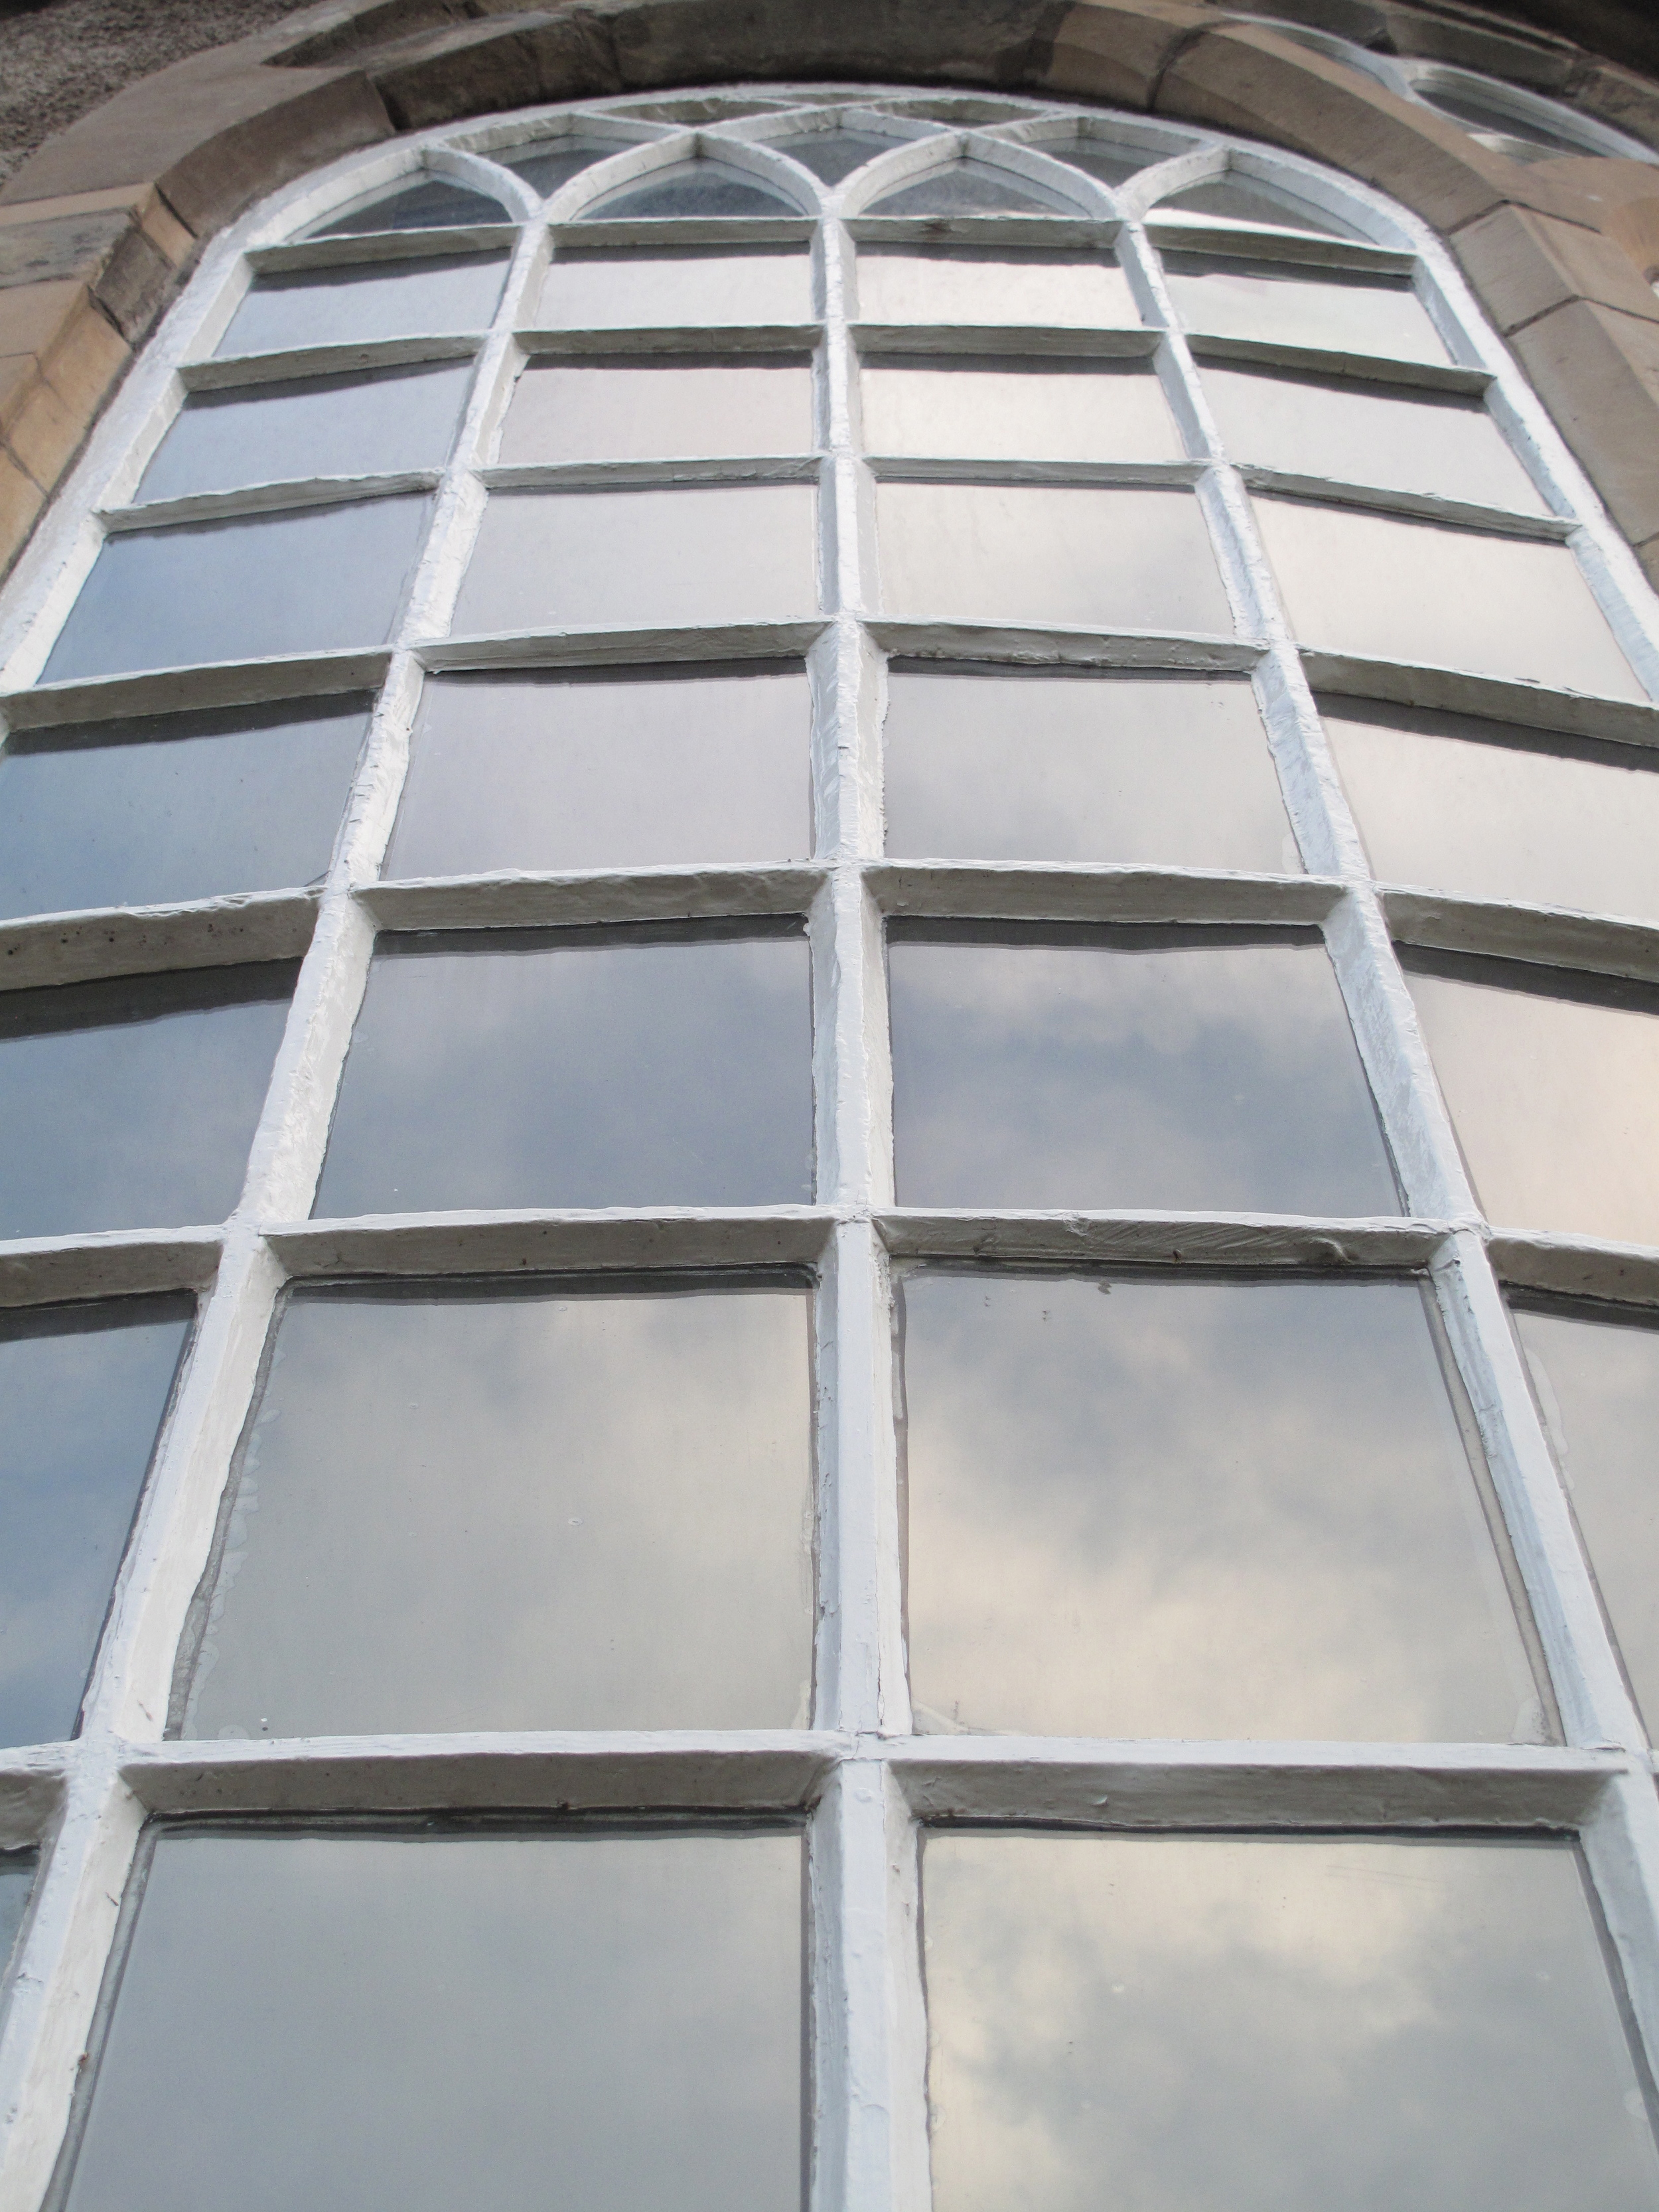 Arched window with many panes of glass, reflecting the clouds.